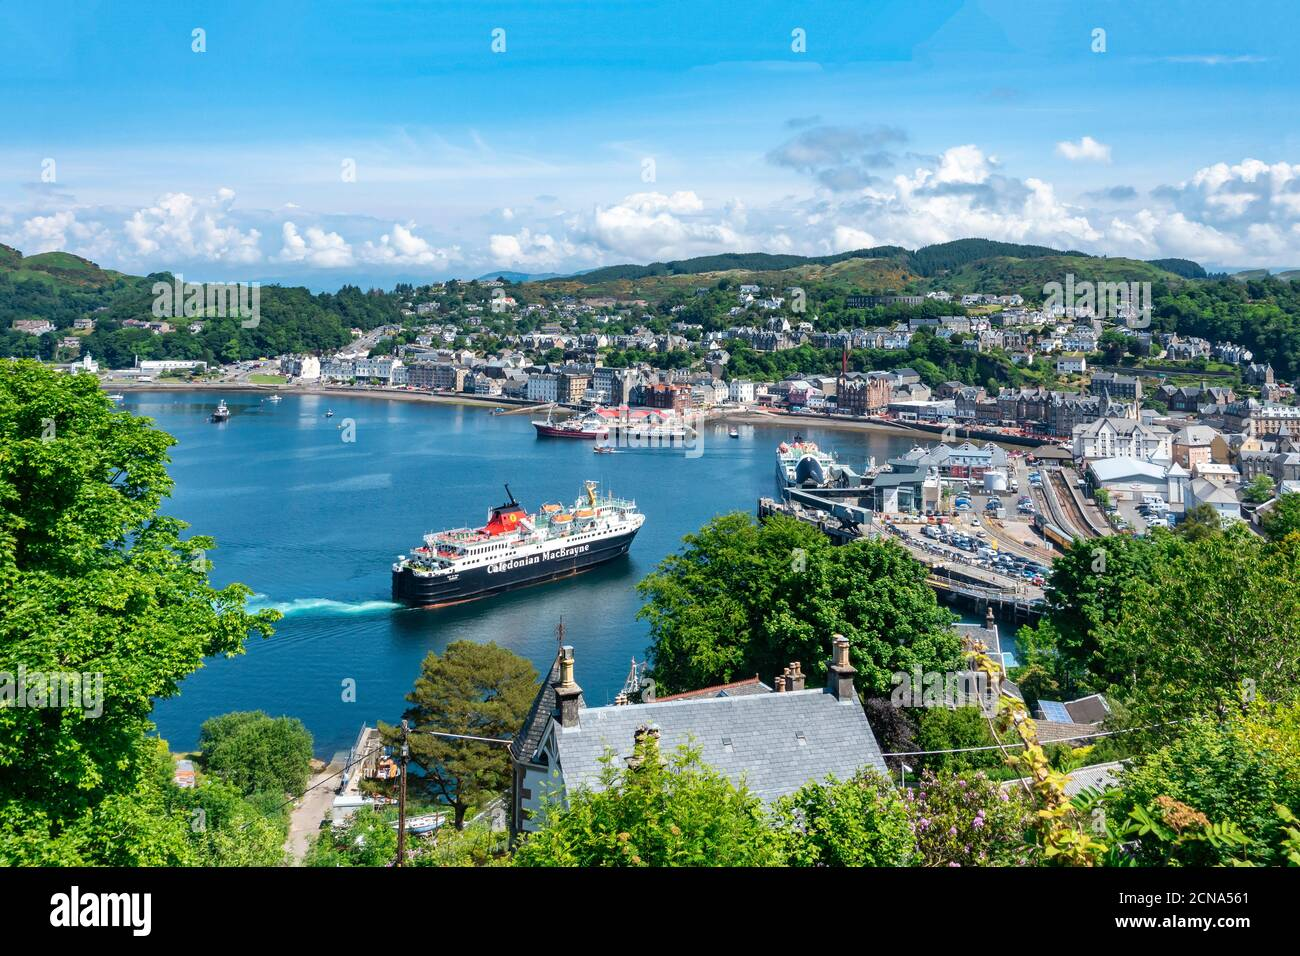 Caledonian Macbrayne car and passenger ferry Isle of Mull arriving at the berth in harbour Oban Argyll & Bute Scotland from Mull Stock Photo